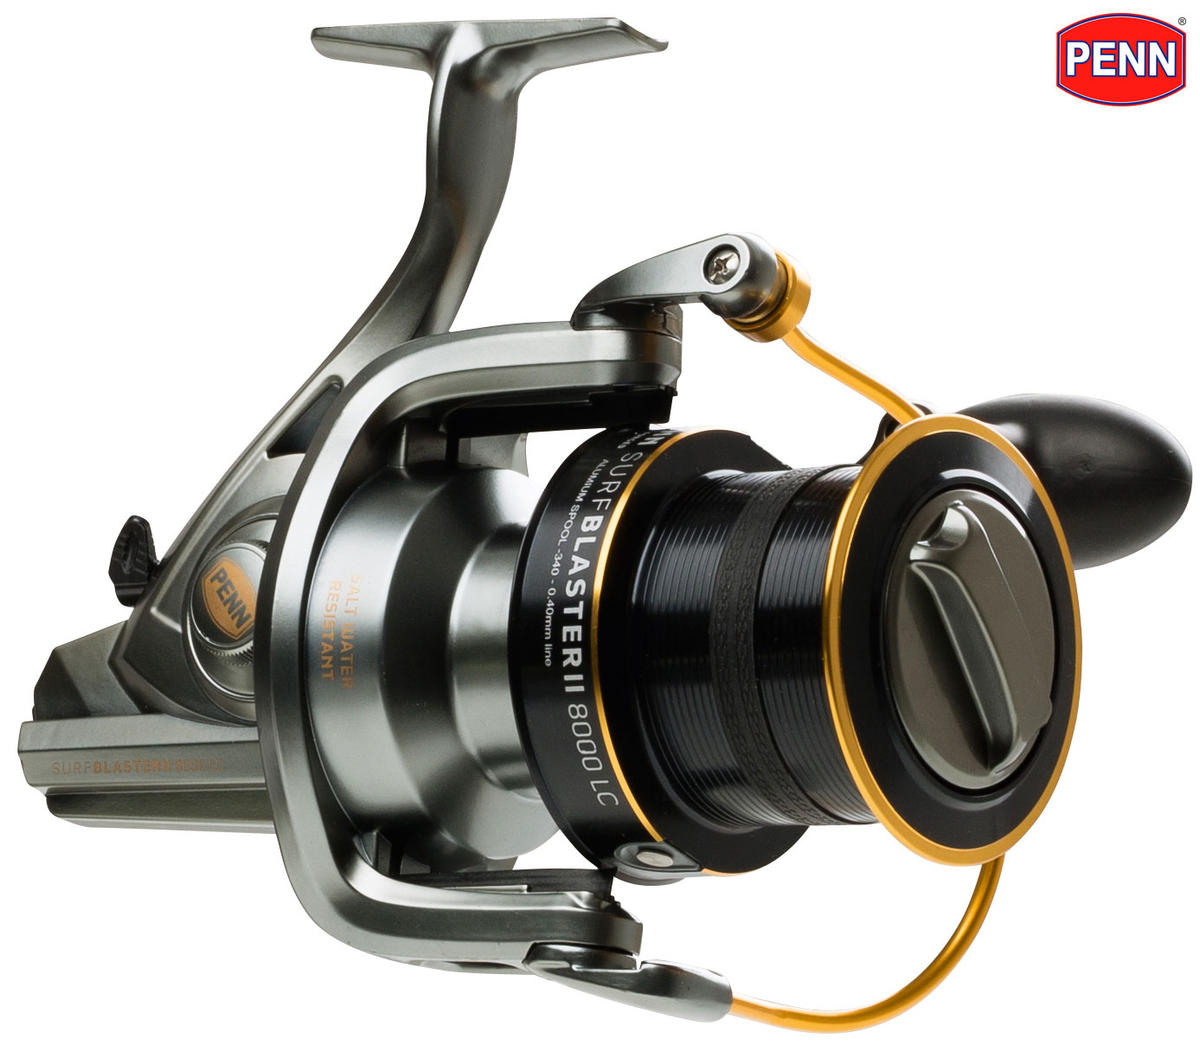 New PENN Surfblaster II 8000 LC Fixed Spool Front Drag Big Pit Surf Casting Reel